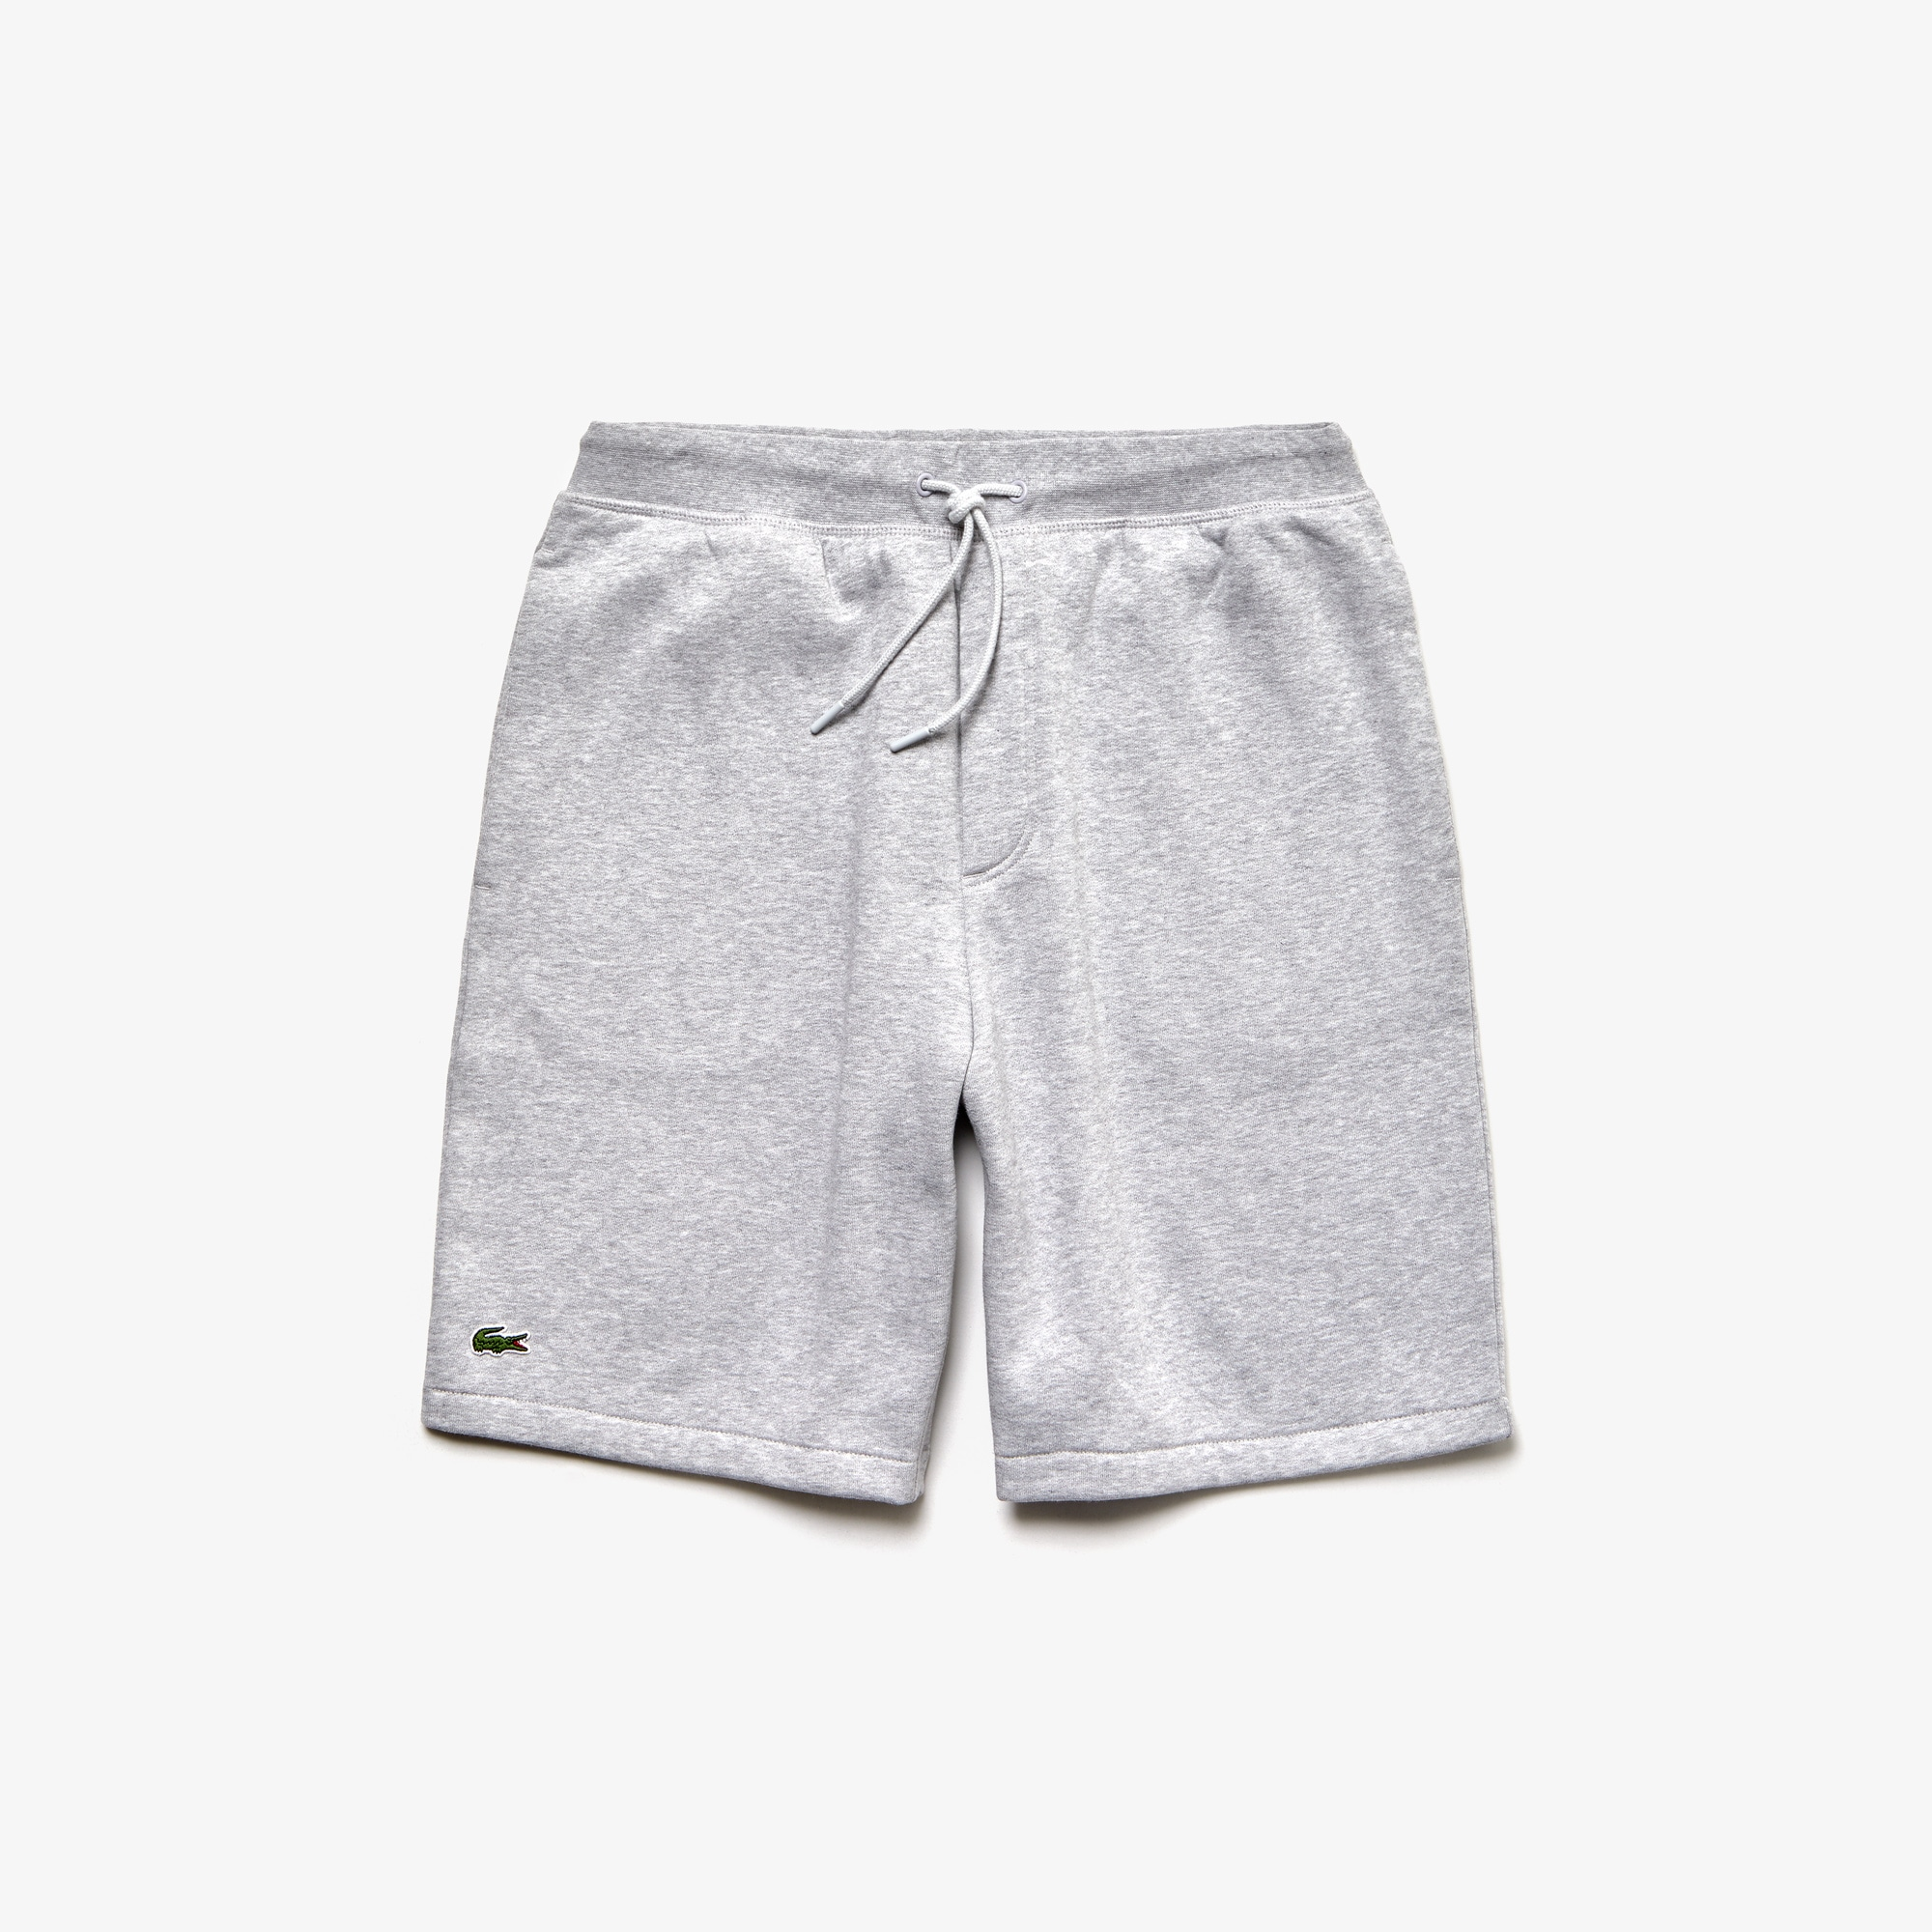 Herren Fleece-Shorts mit LACOSTE Stickerei LACOSTE SPORT